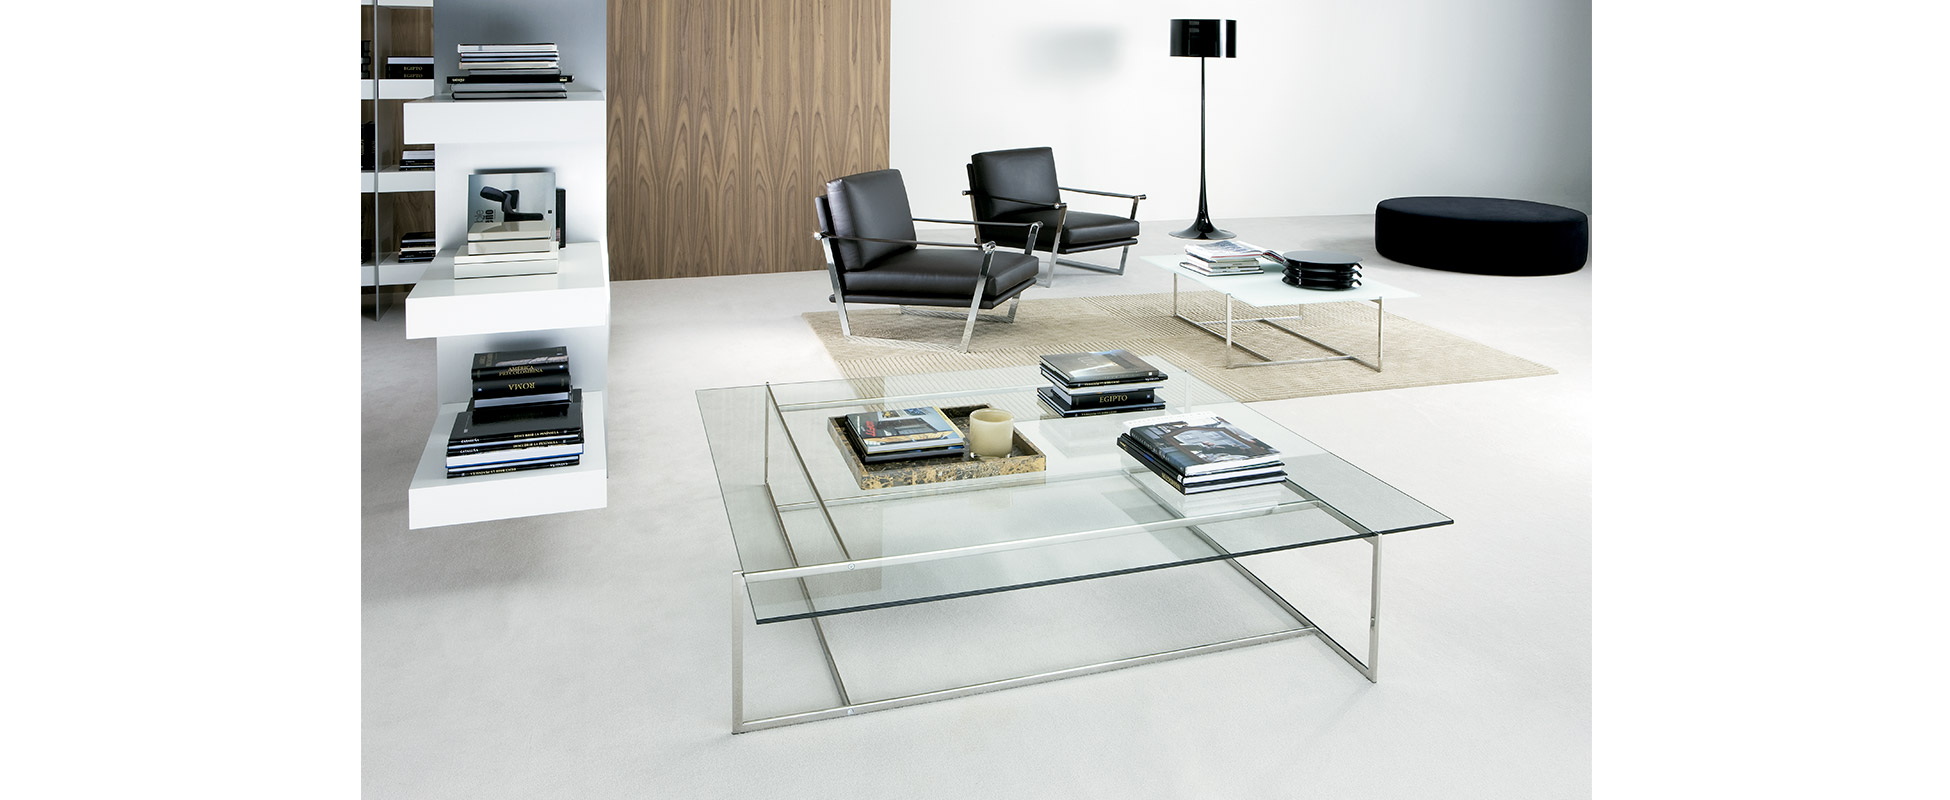 C-table_02